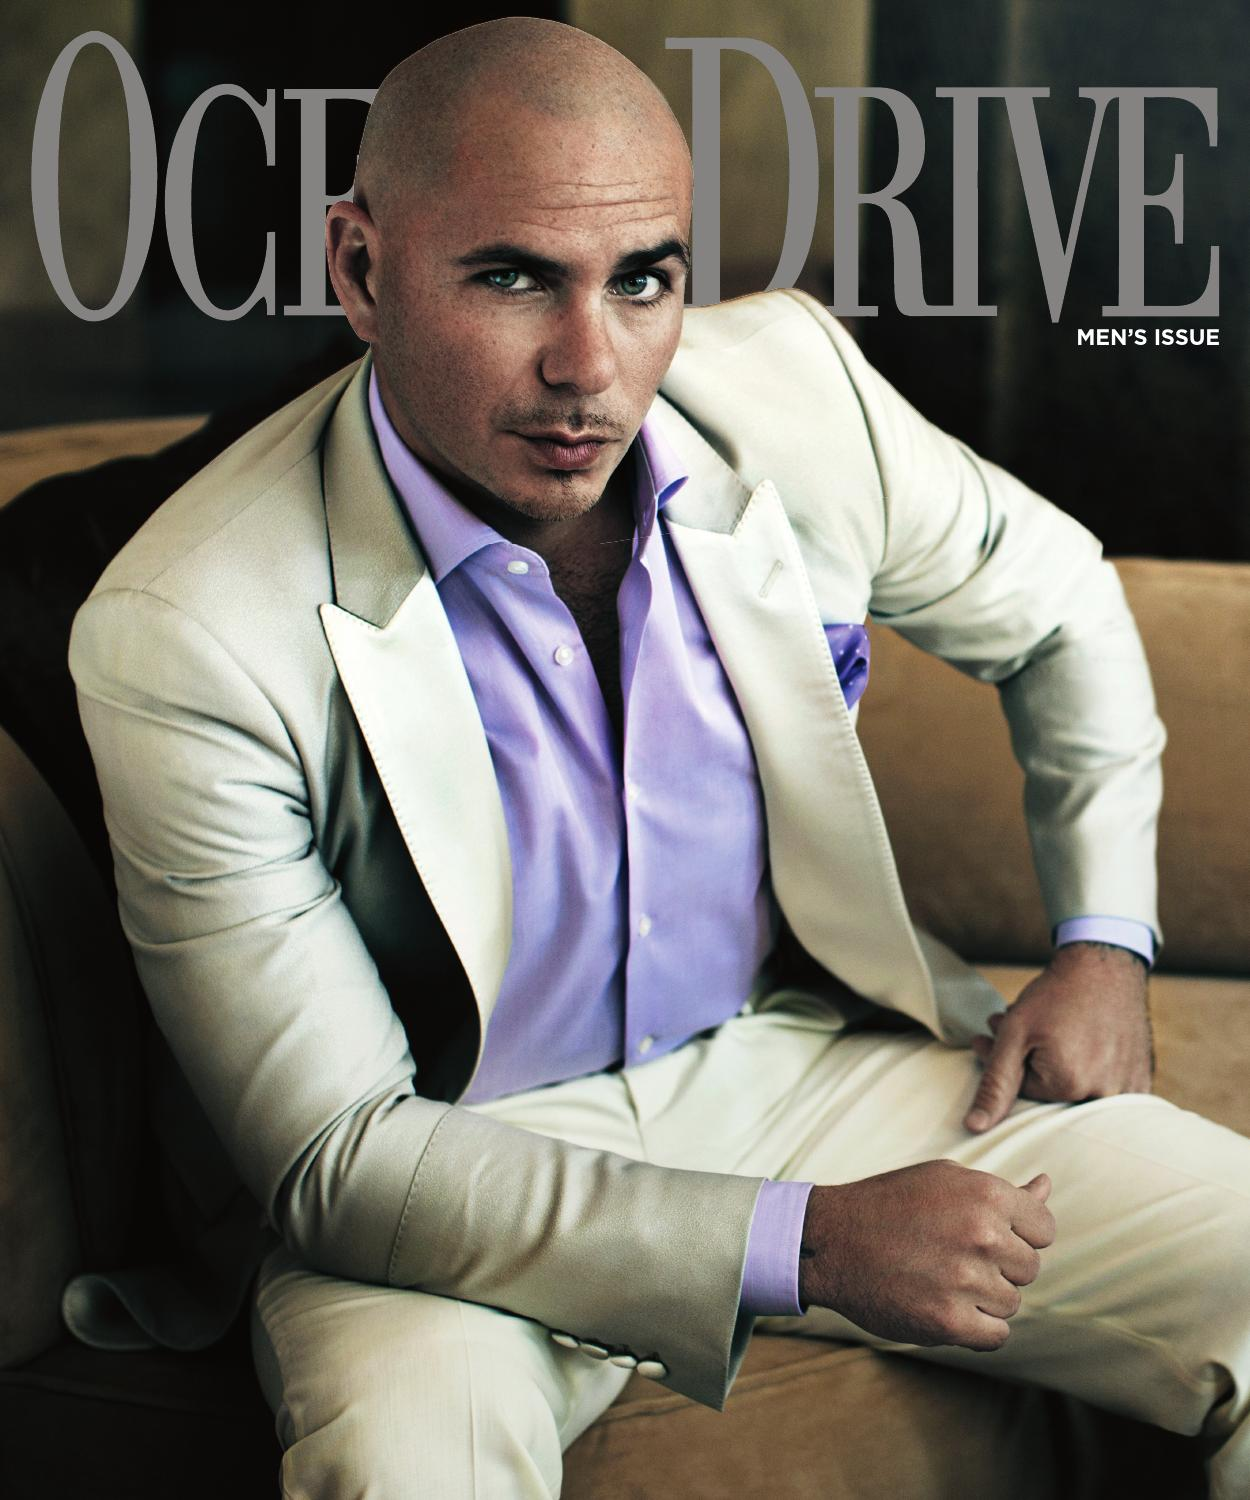 Ocean Drive - 2014 - Issue 8 - October by Niche Media Holdings, LLC - issuu